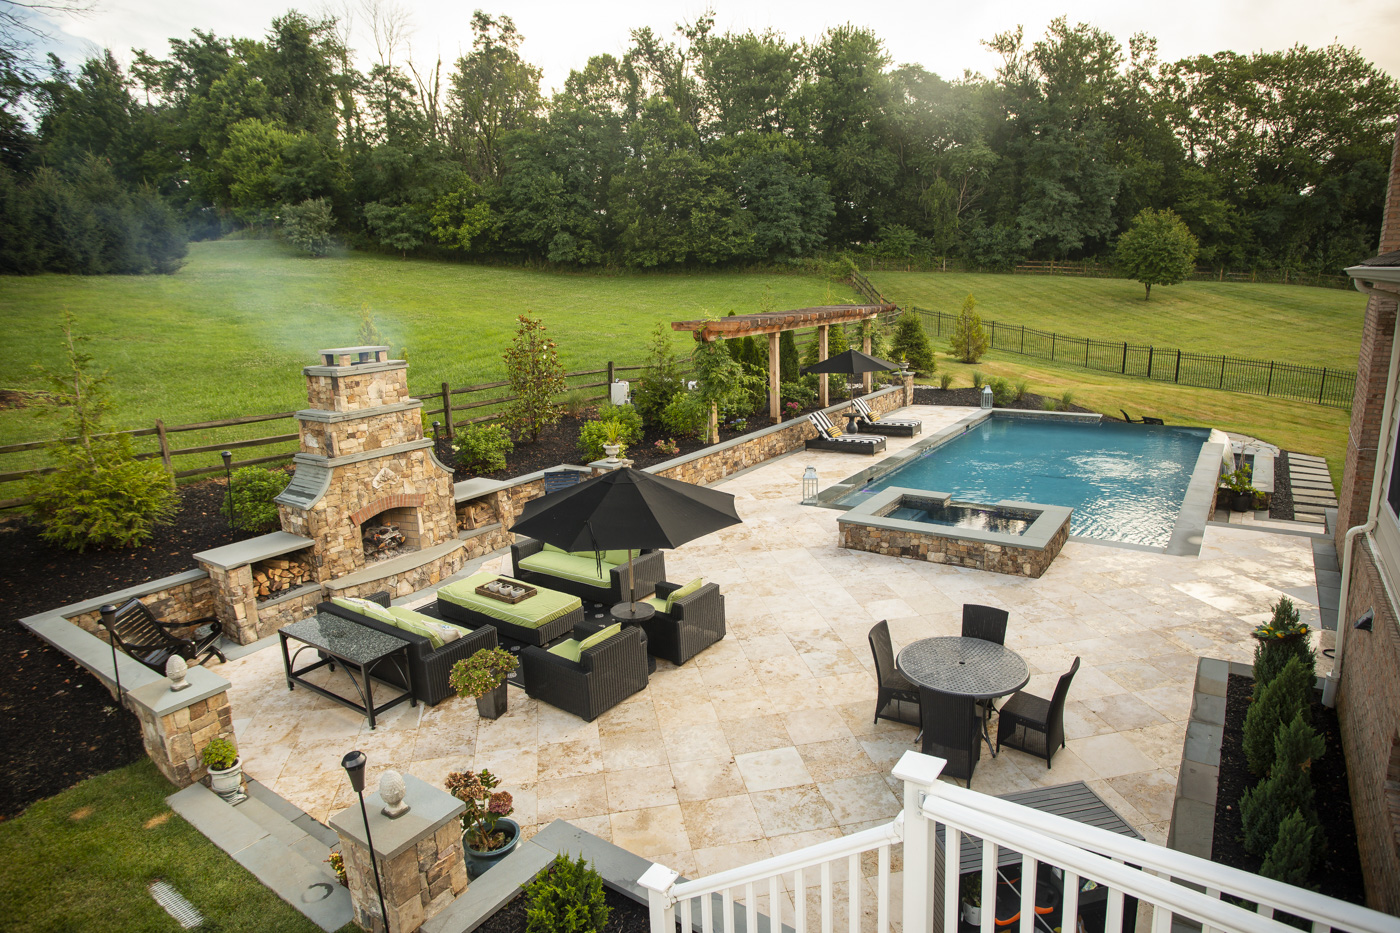 backyard landscape with pool, patio, and outdoor fireplace